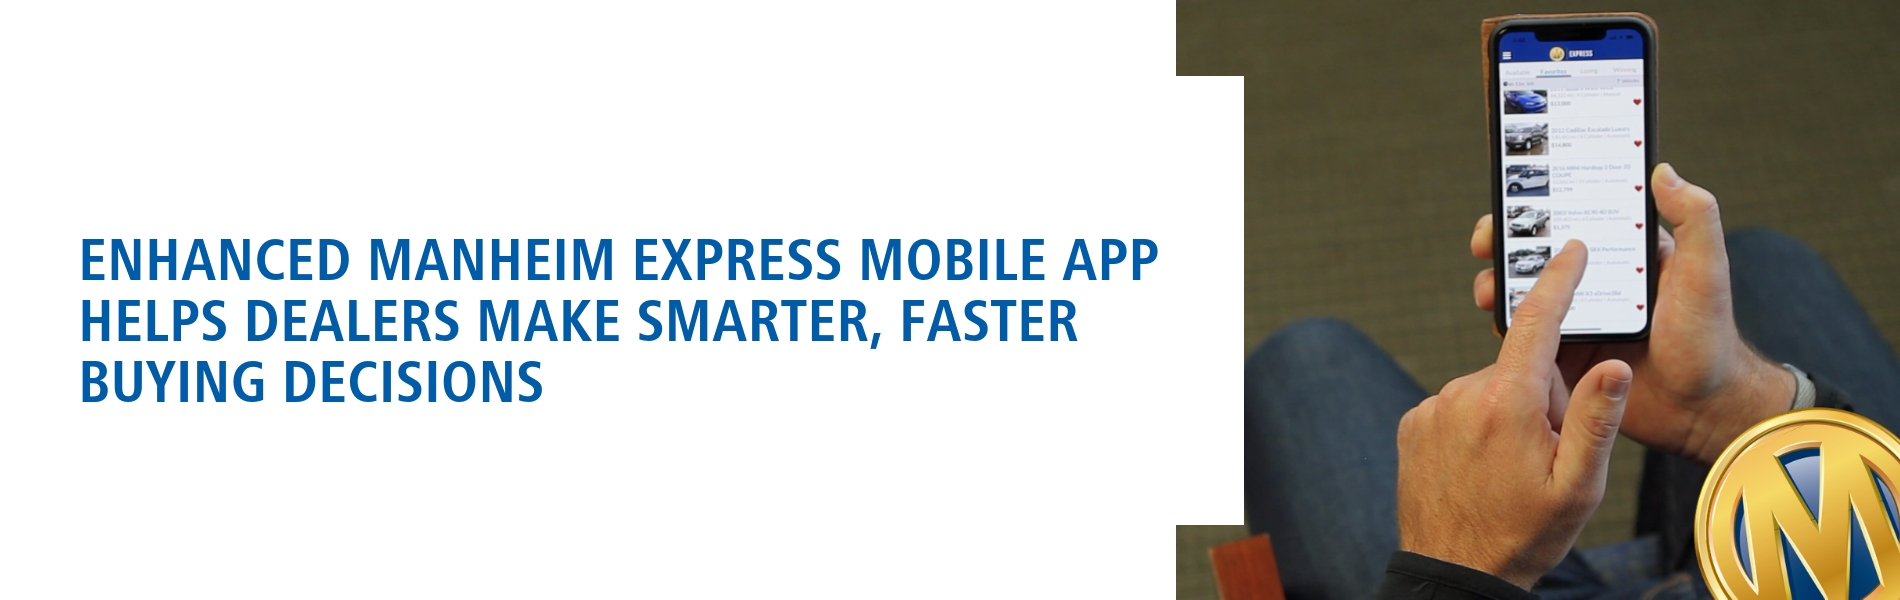 Enhanced Manheim Express Mobile App Helps Dealers Make Smarter, Faster Buying Decisions